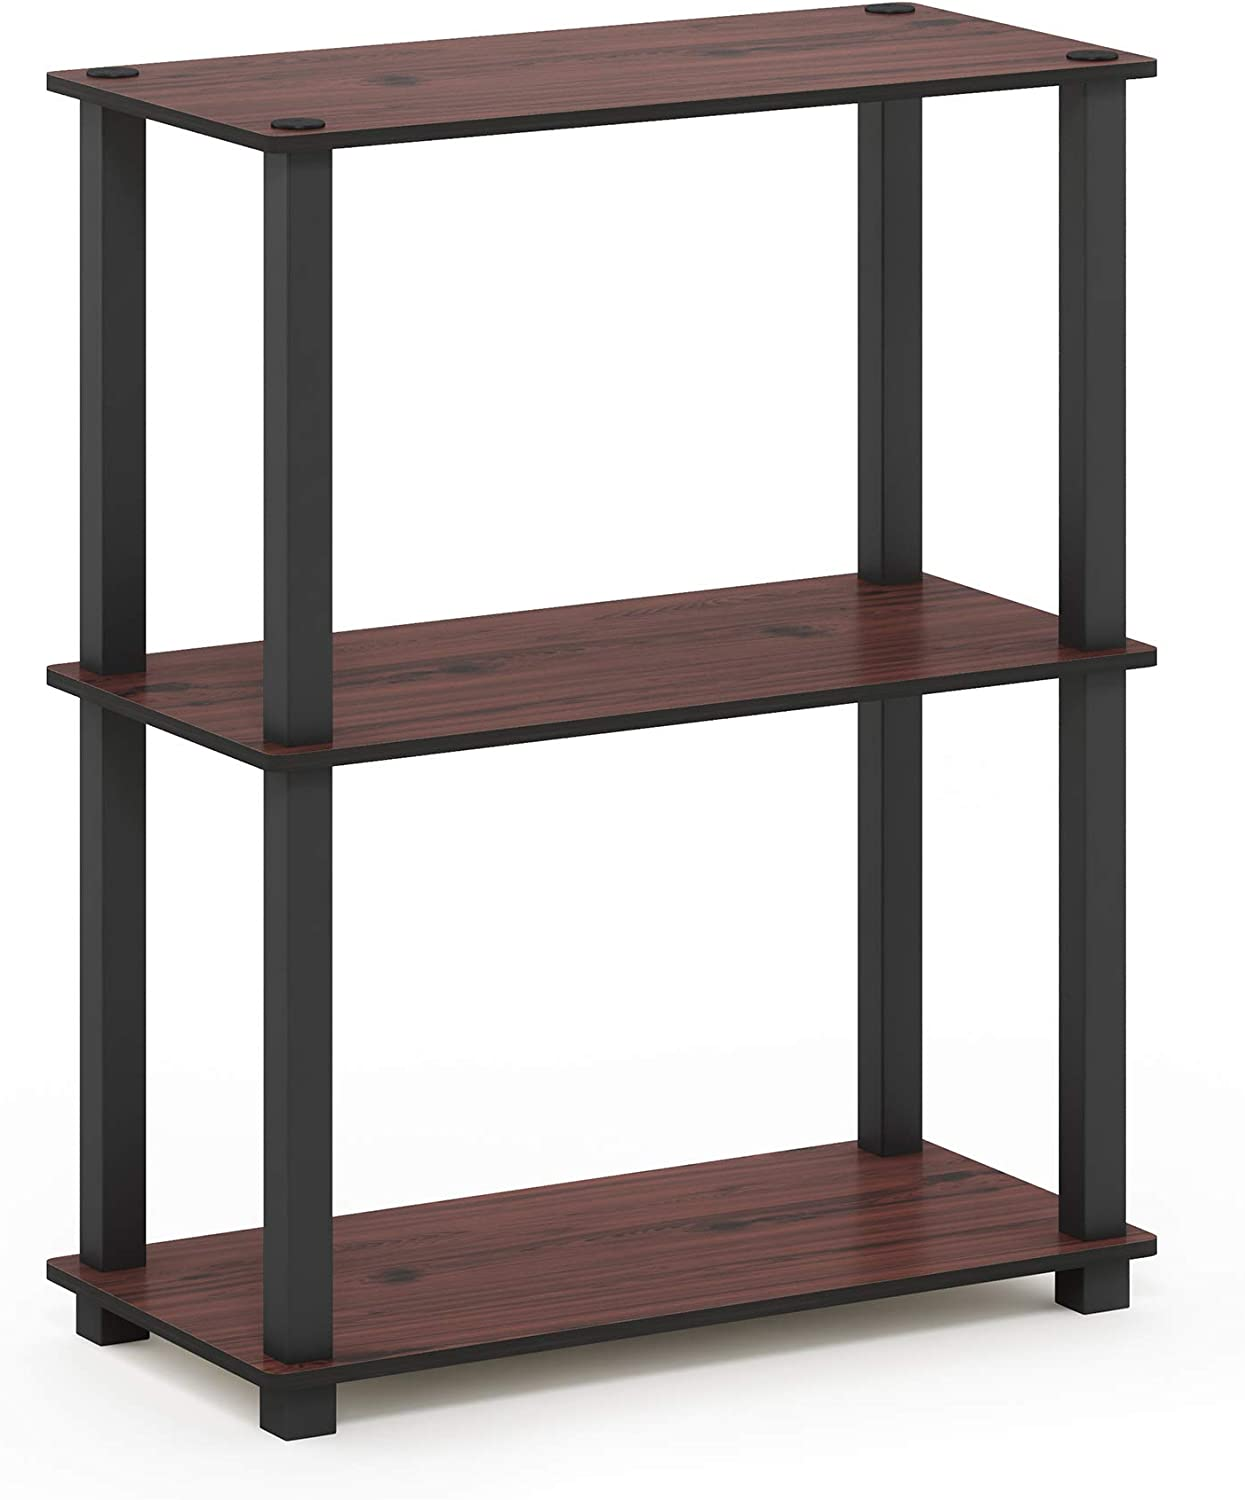 Furinno Turn-S-Tube 3-Tier Compact Multipurpose Shelf Display Rack, Square, Dark Cherry/Black